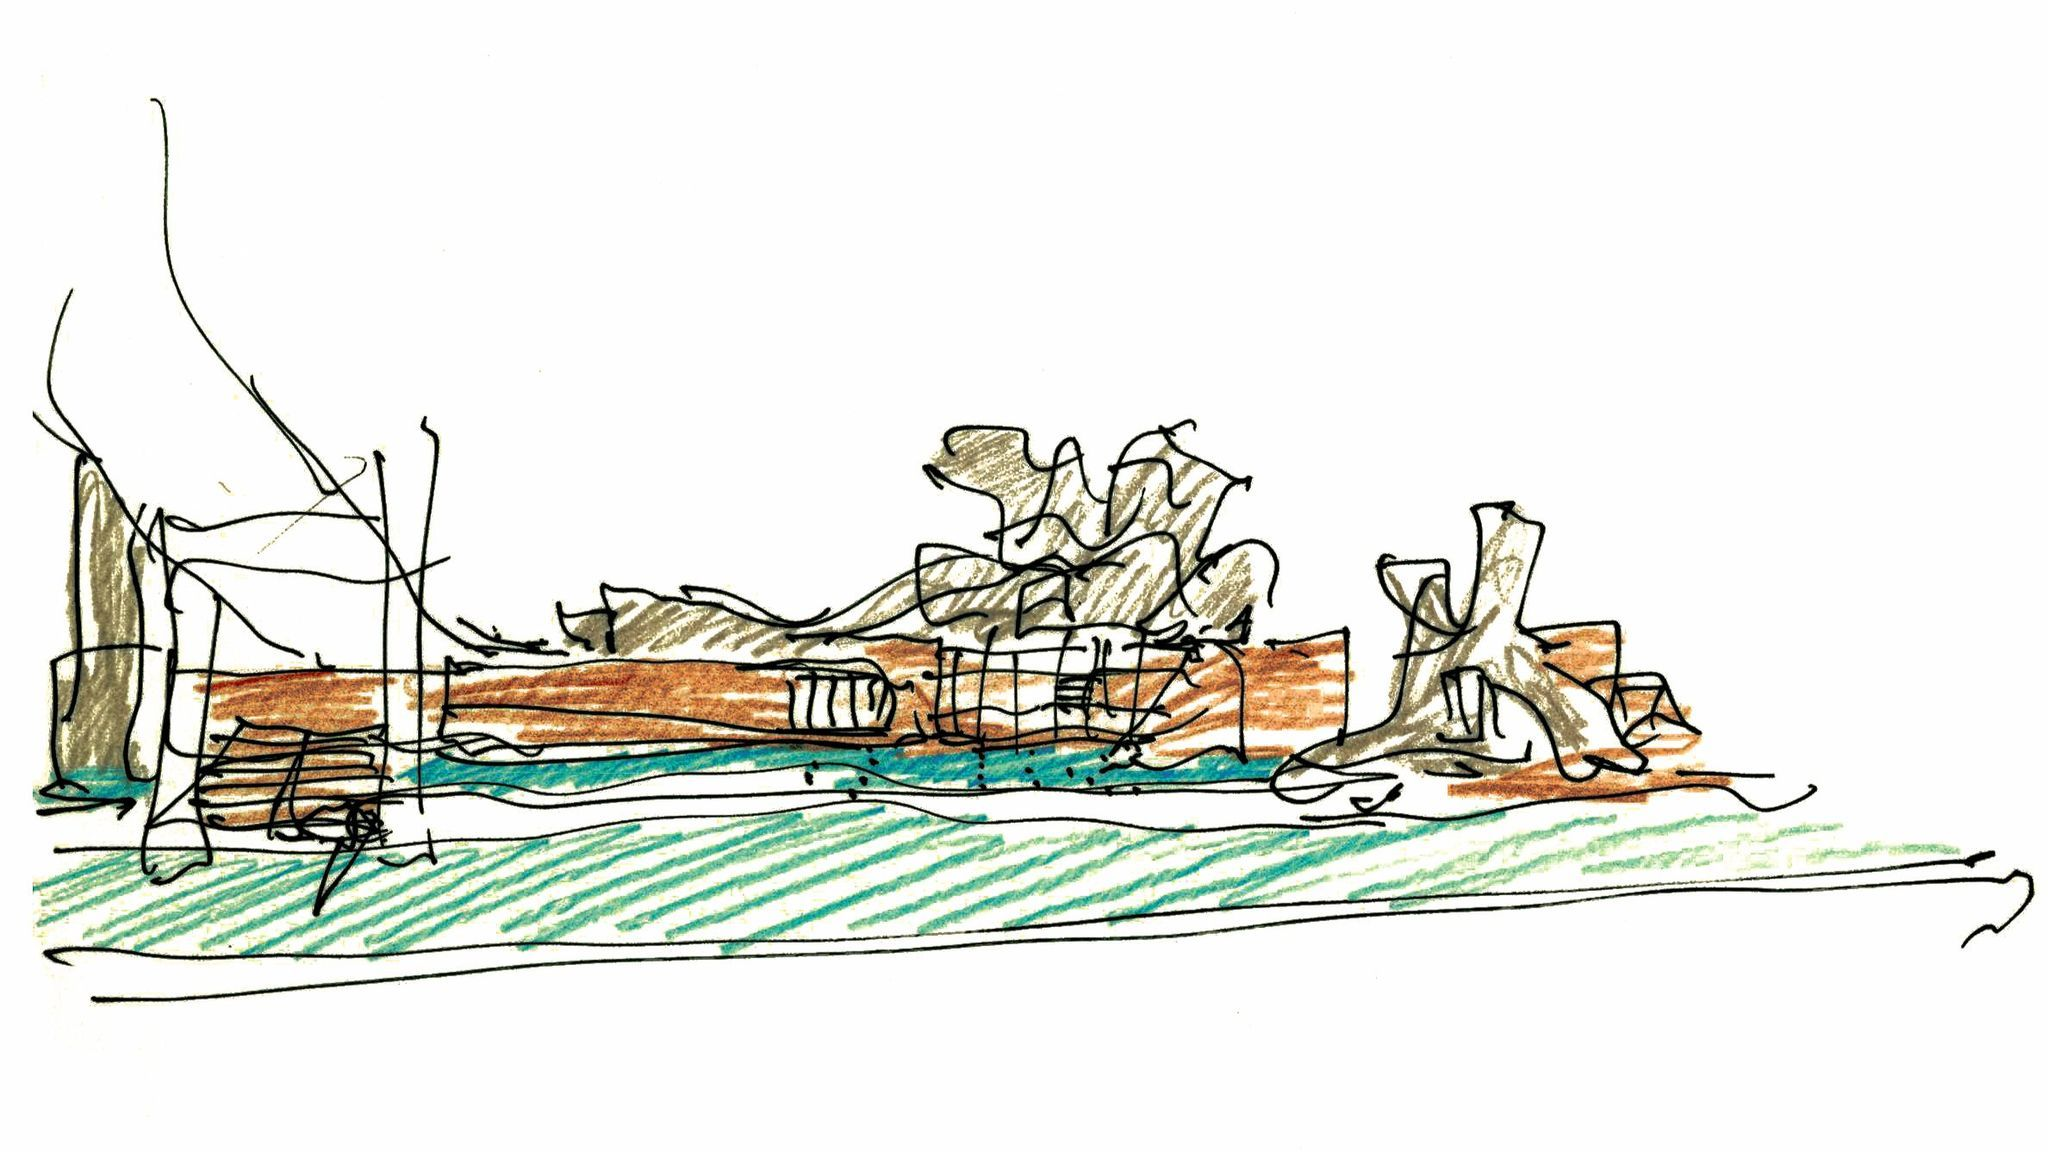 Frank Gehry's sketch of the Bilbao museum.